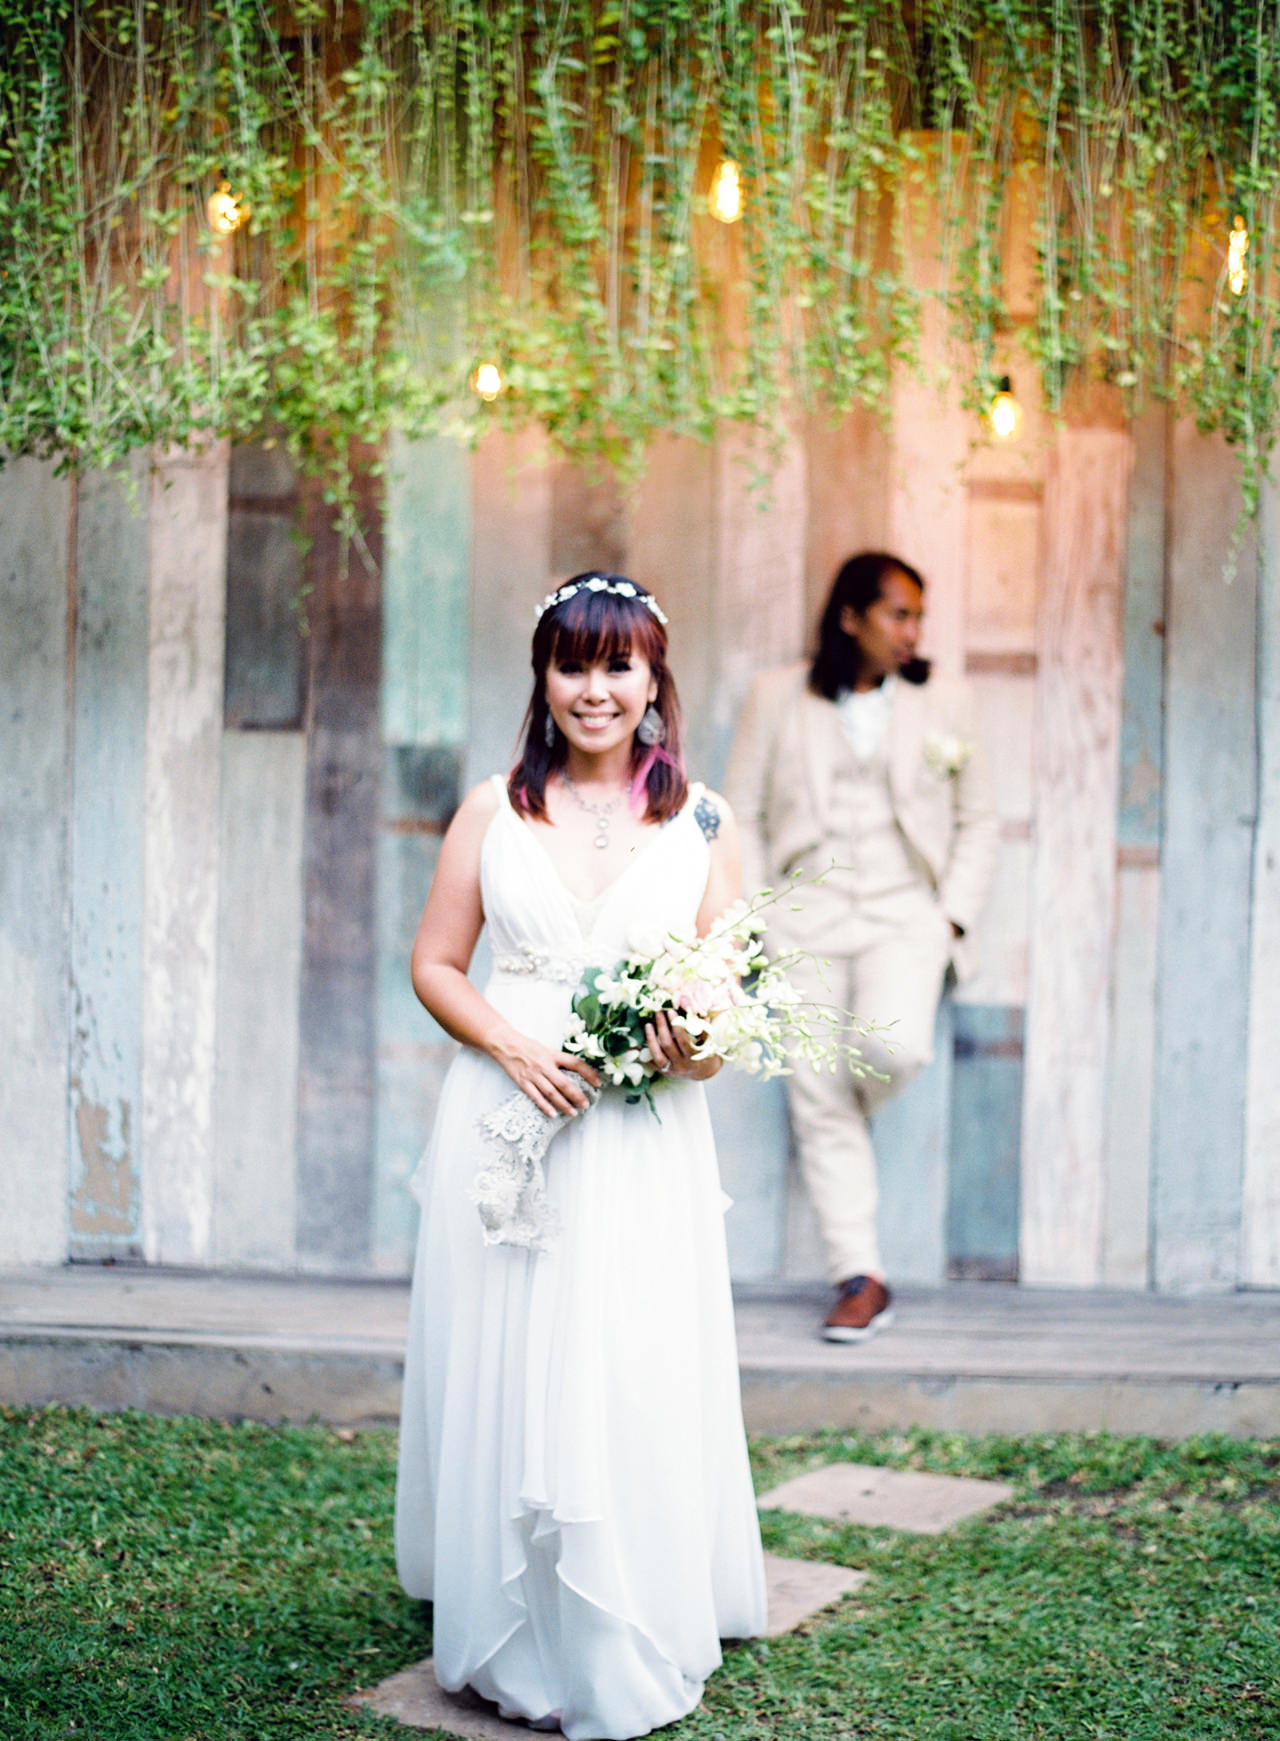 The Wedding of Bayu and Ivony at Gorgeous Bali Wedding Venue 37